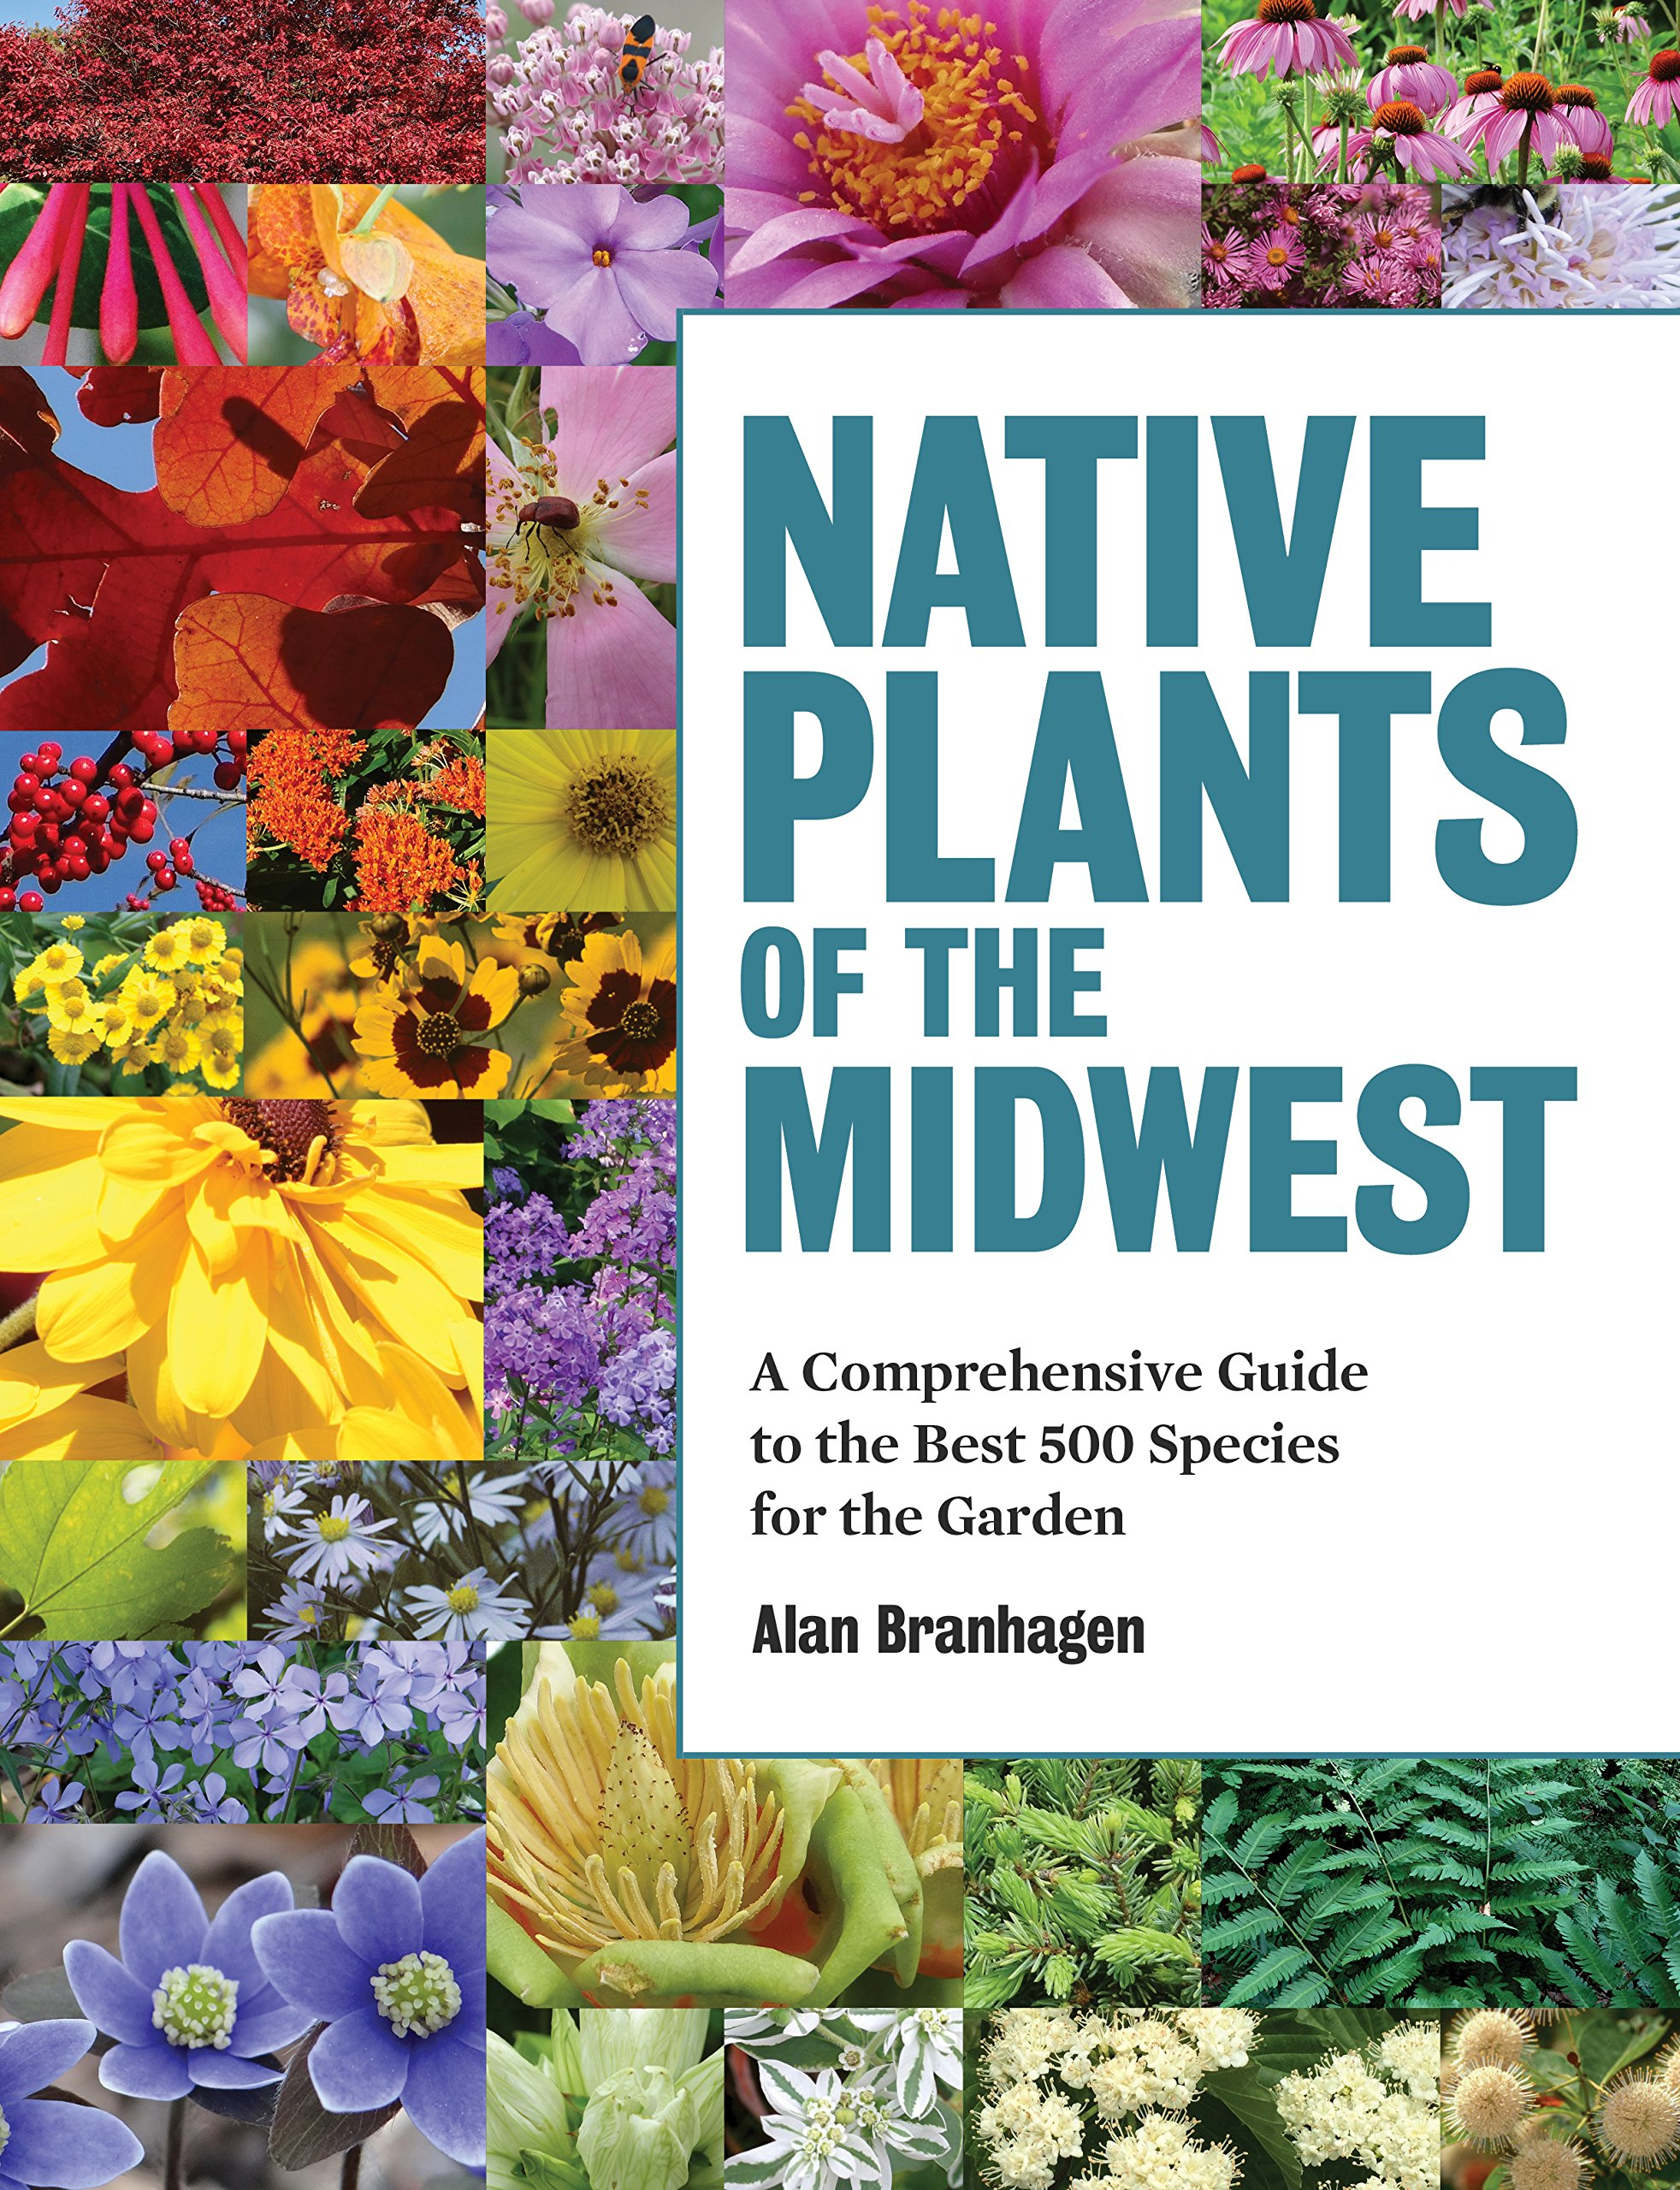 Exceptional Native Plants Of The Midwest: A Comprehensive Guide To The Best 500 Species  For The Garden: Alan Branhagen: 9781604695939: Amazon.com: Books